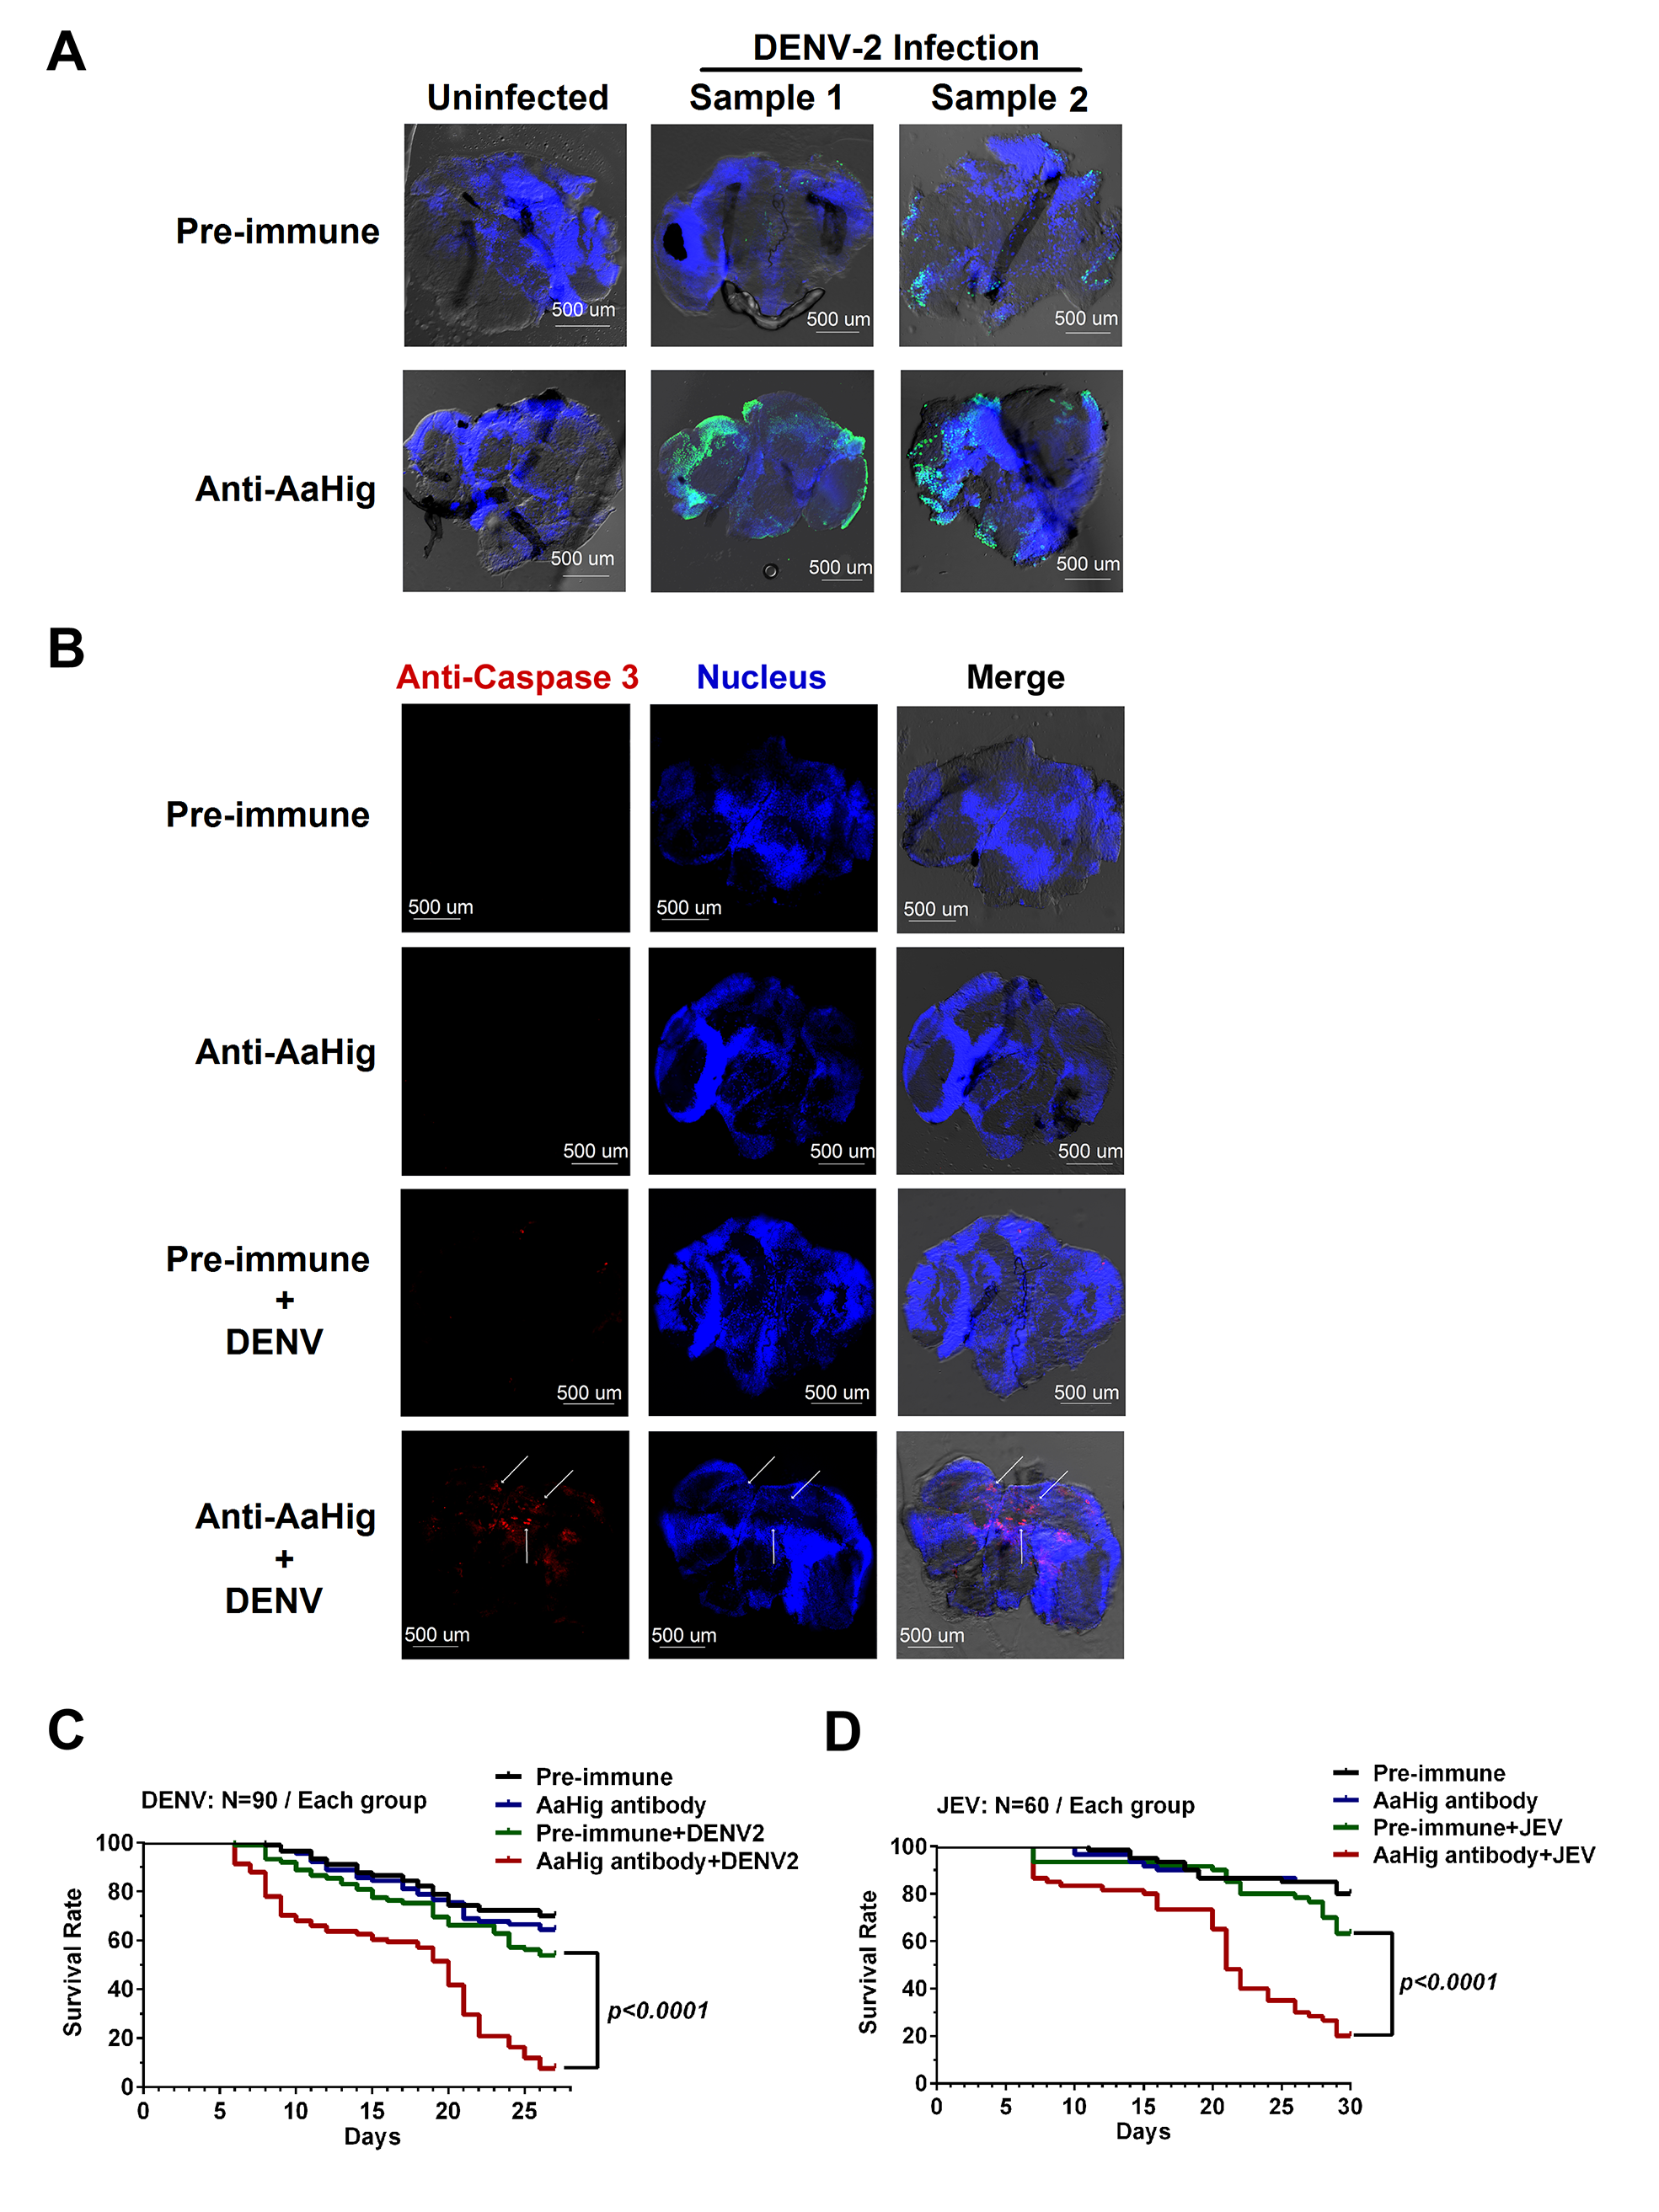 Blockade of AaHig resulted in apoptosis of neural cells and reduction of mosquito lifespan in DENV and JEV infections.